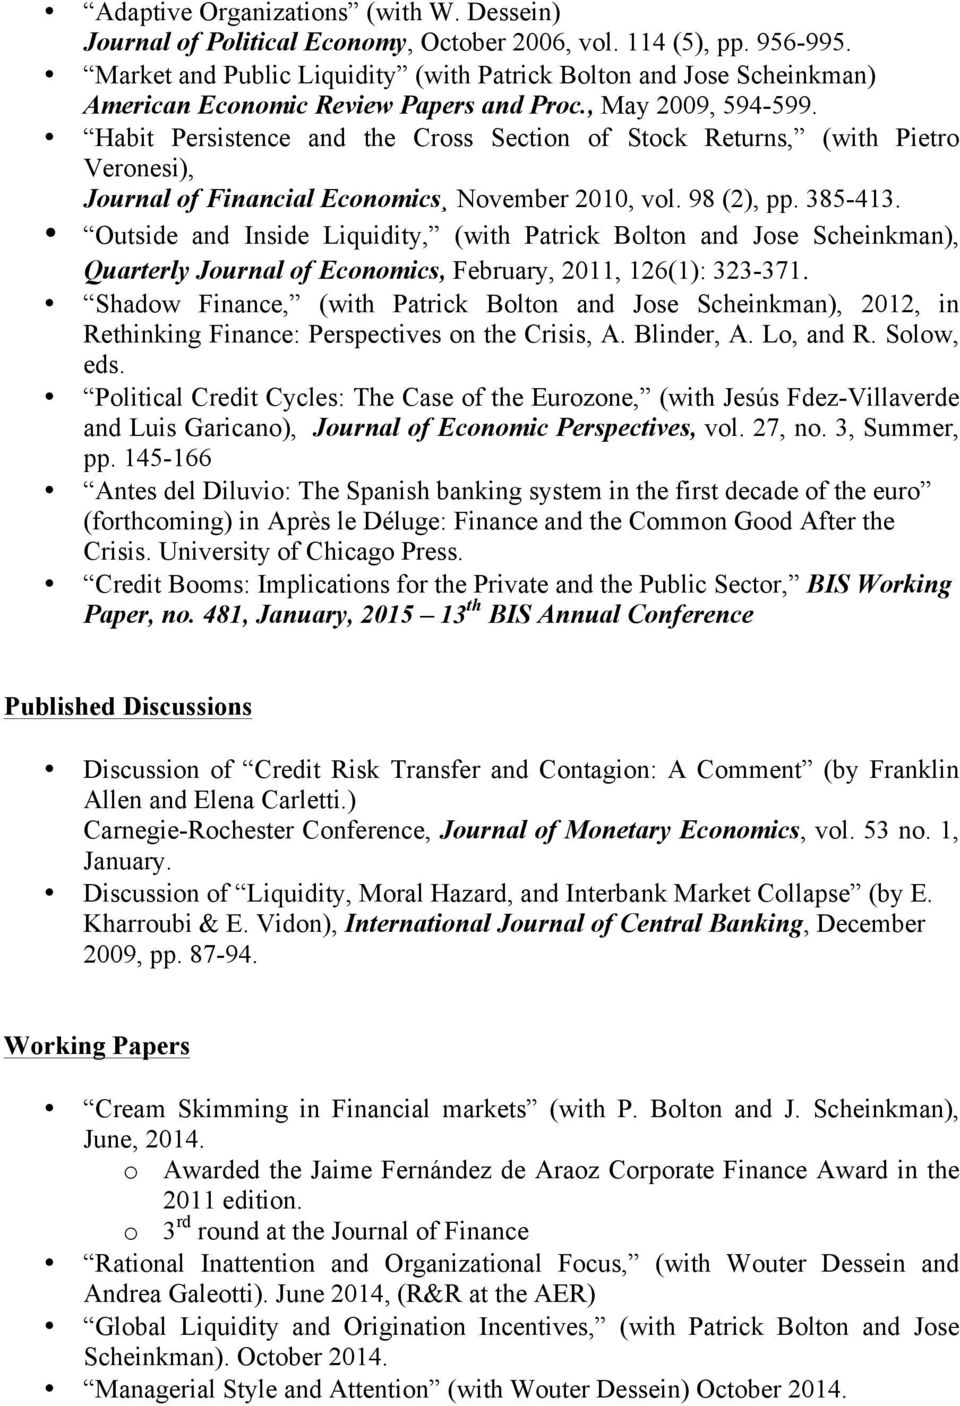 Habit Persistence and the Cross Section of Stock Returns, (with Pietro Veronesi), Journal of Financial Economics November 2010, vol. 98 (2), pp. 385-413.